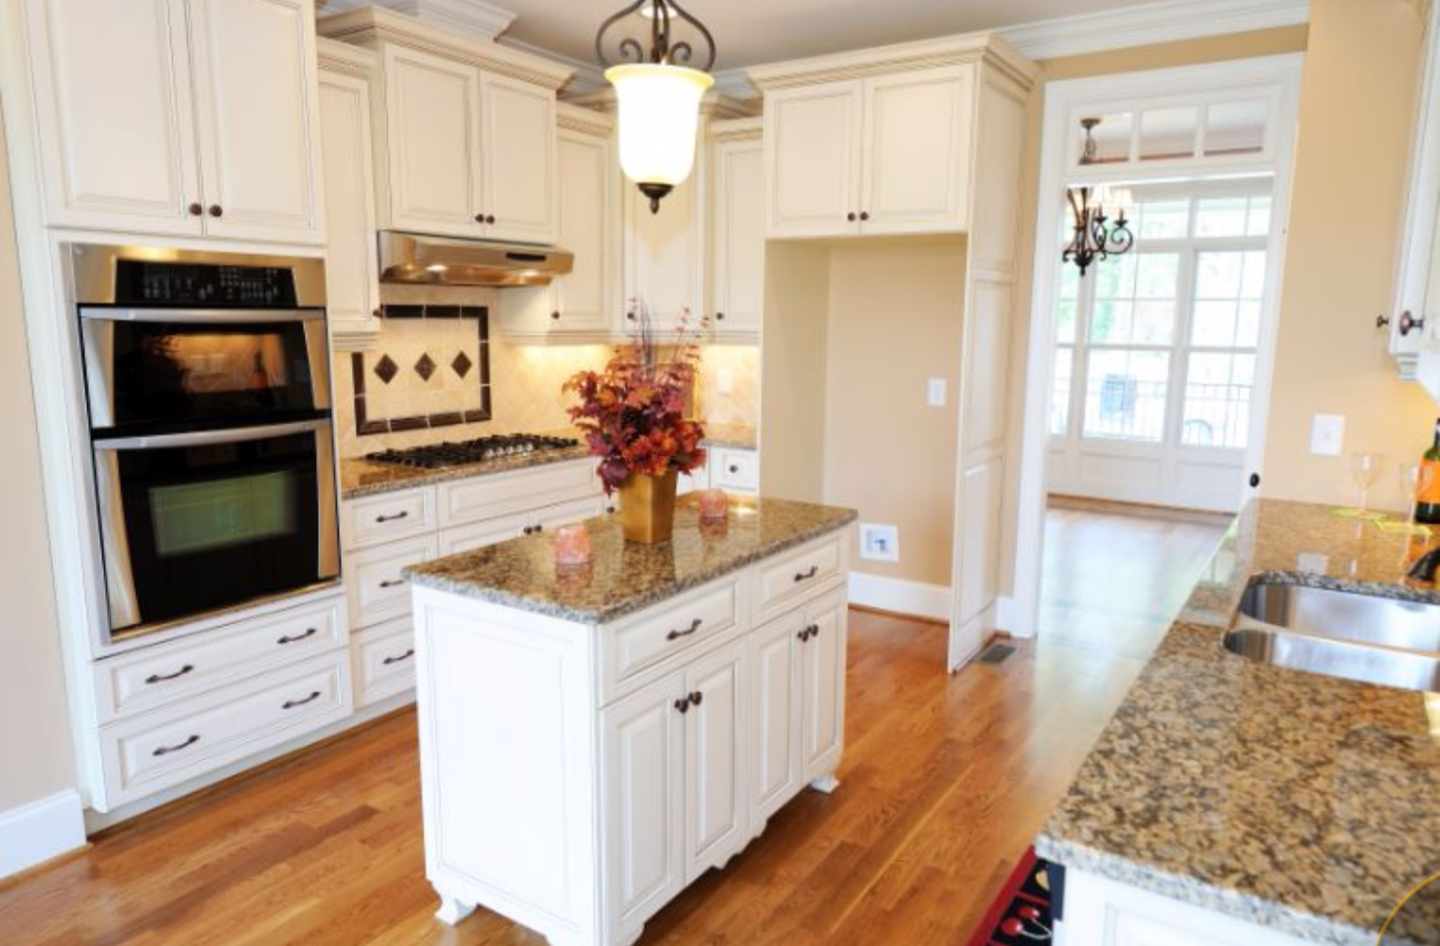 Painting kitchen cabinets and cabinet refinishing denver for Cabinetry kitchen cabinets